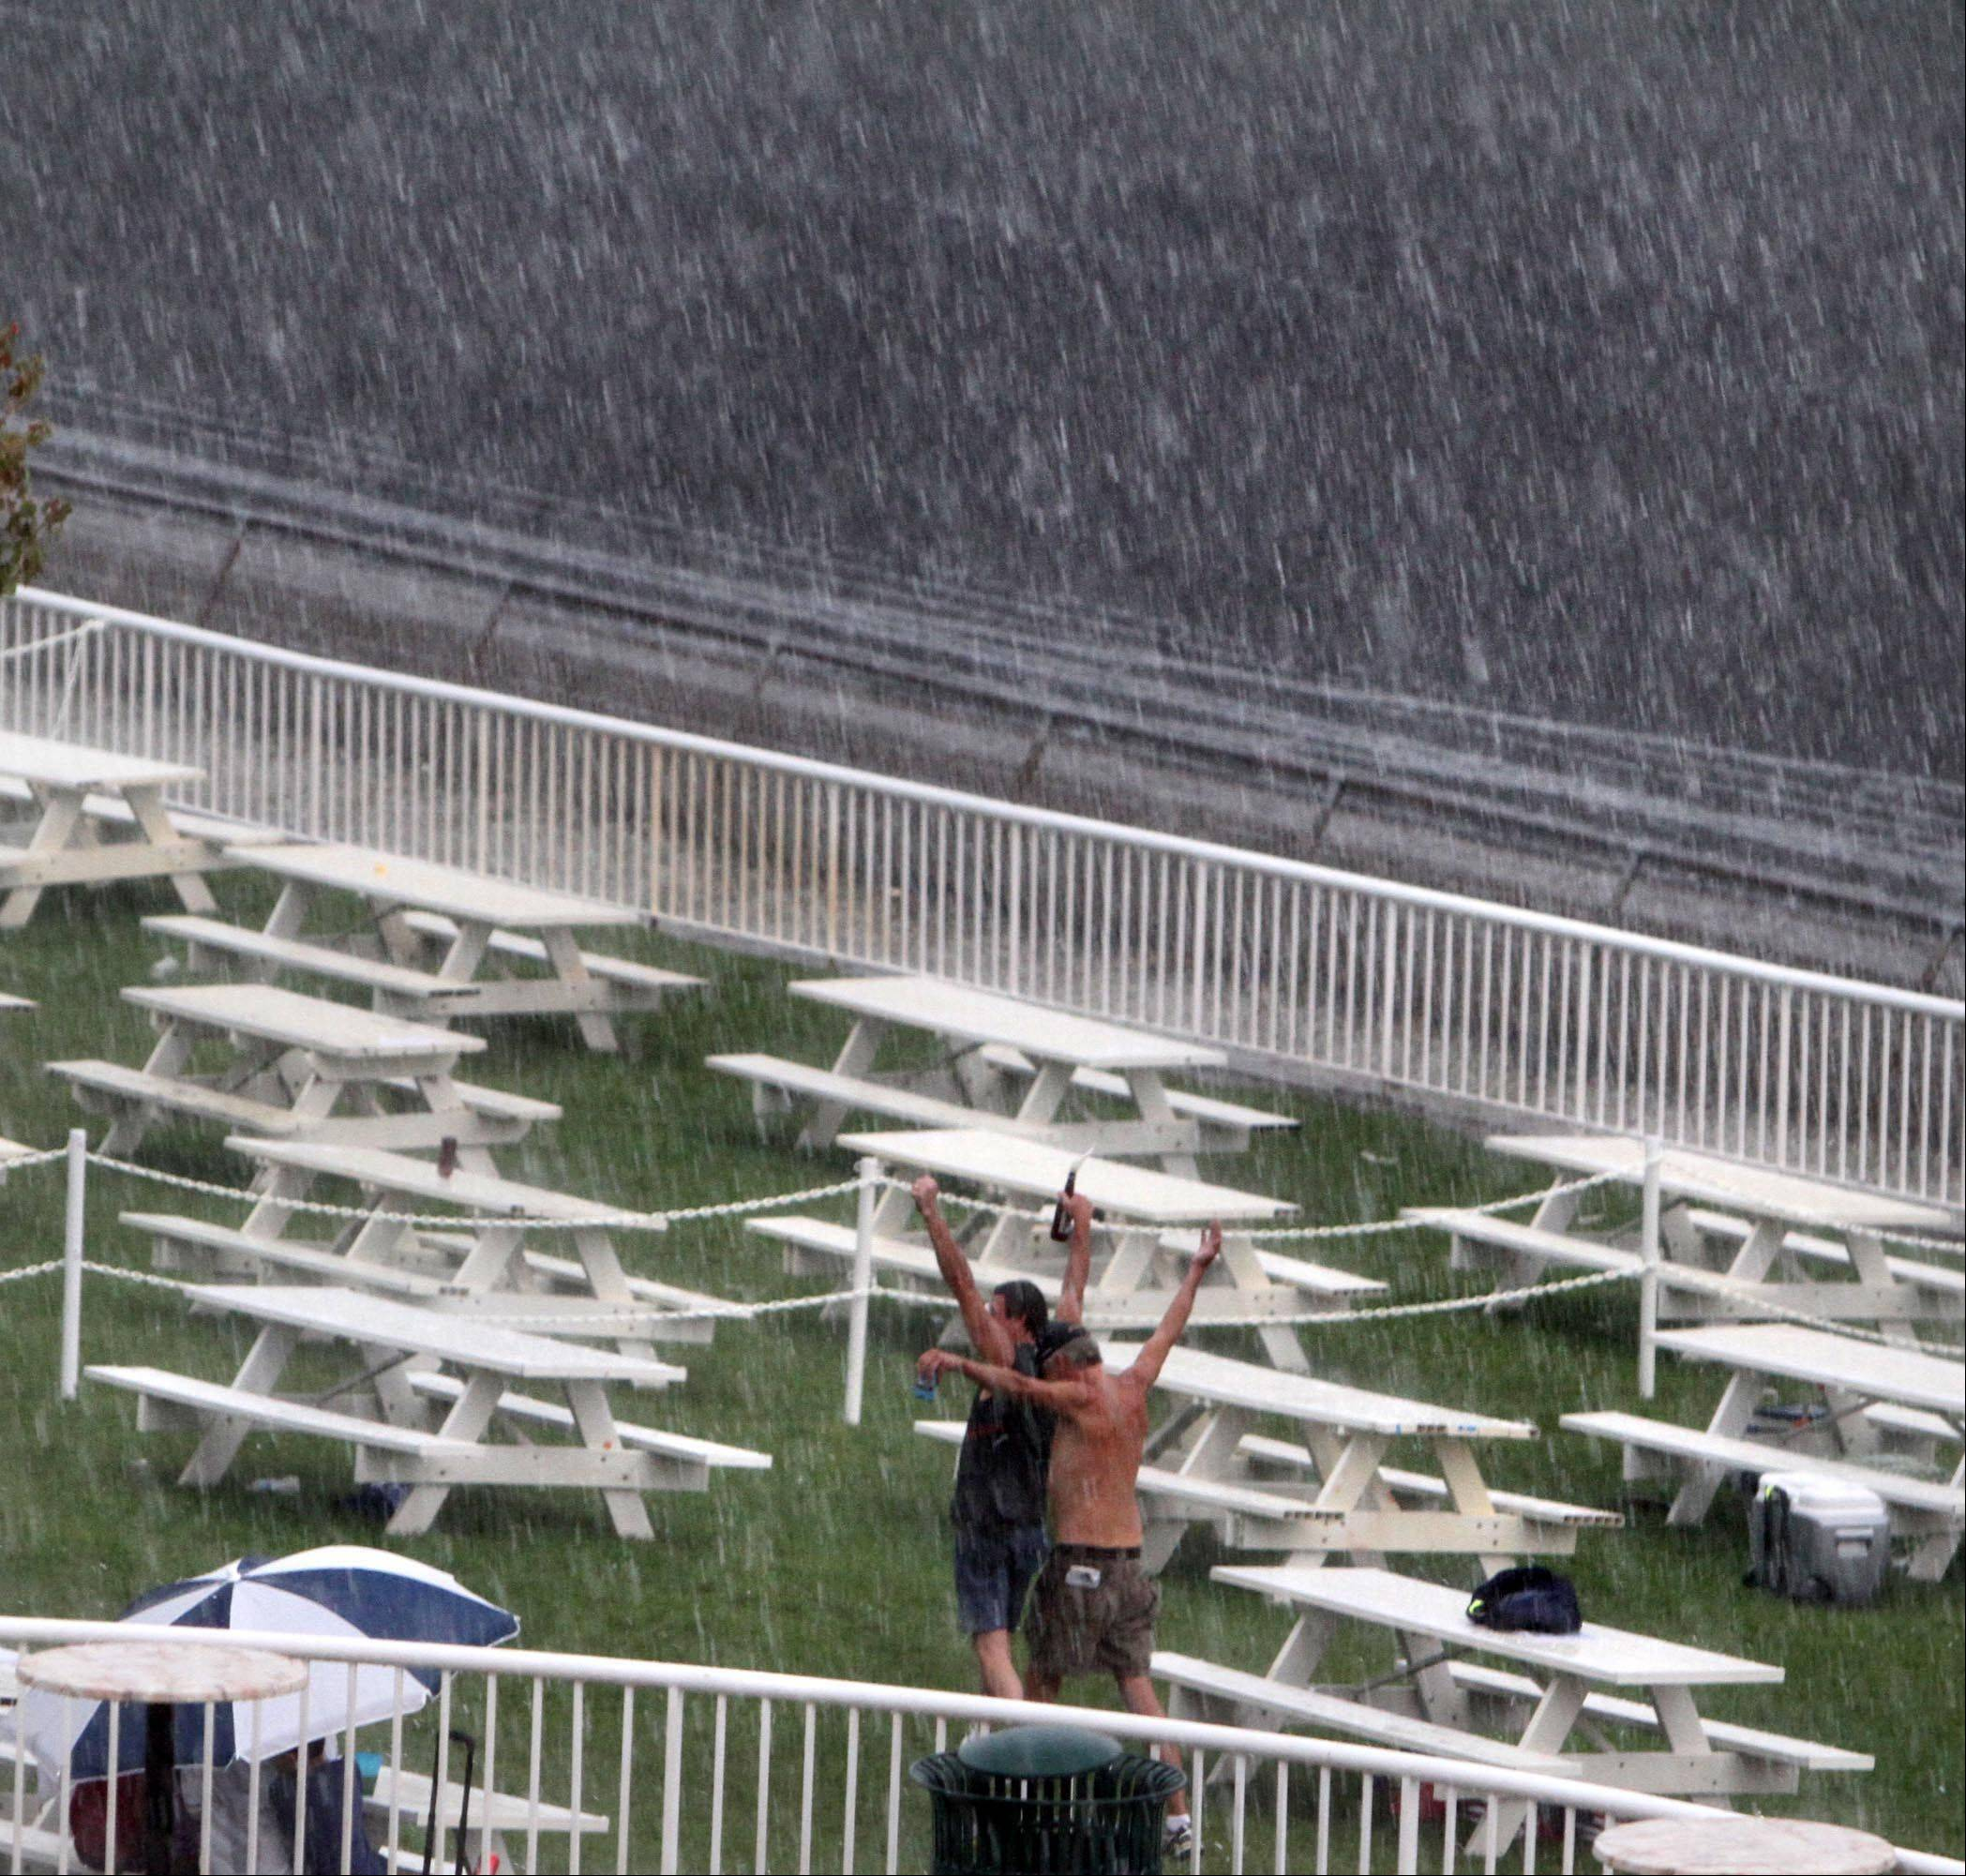 Two men in the picnic area celebrate during the rain delay at Arlington Park on Saturday.